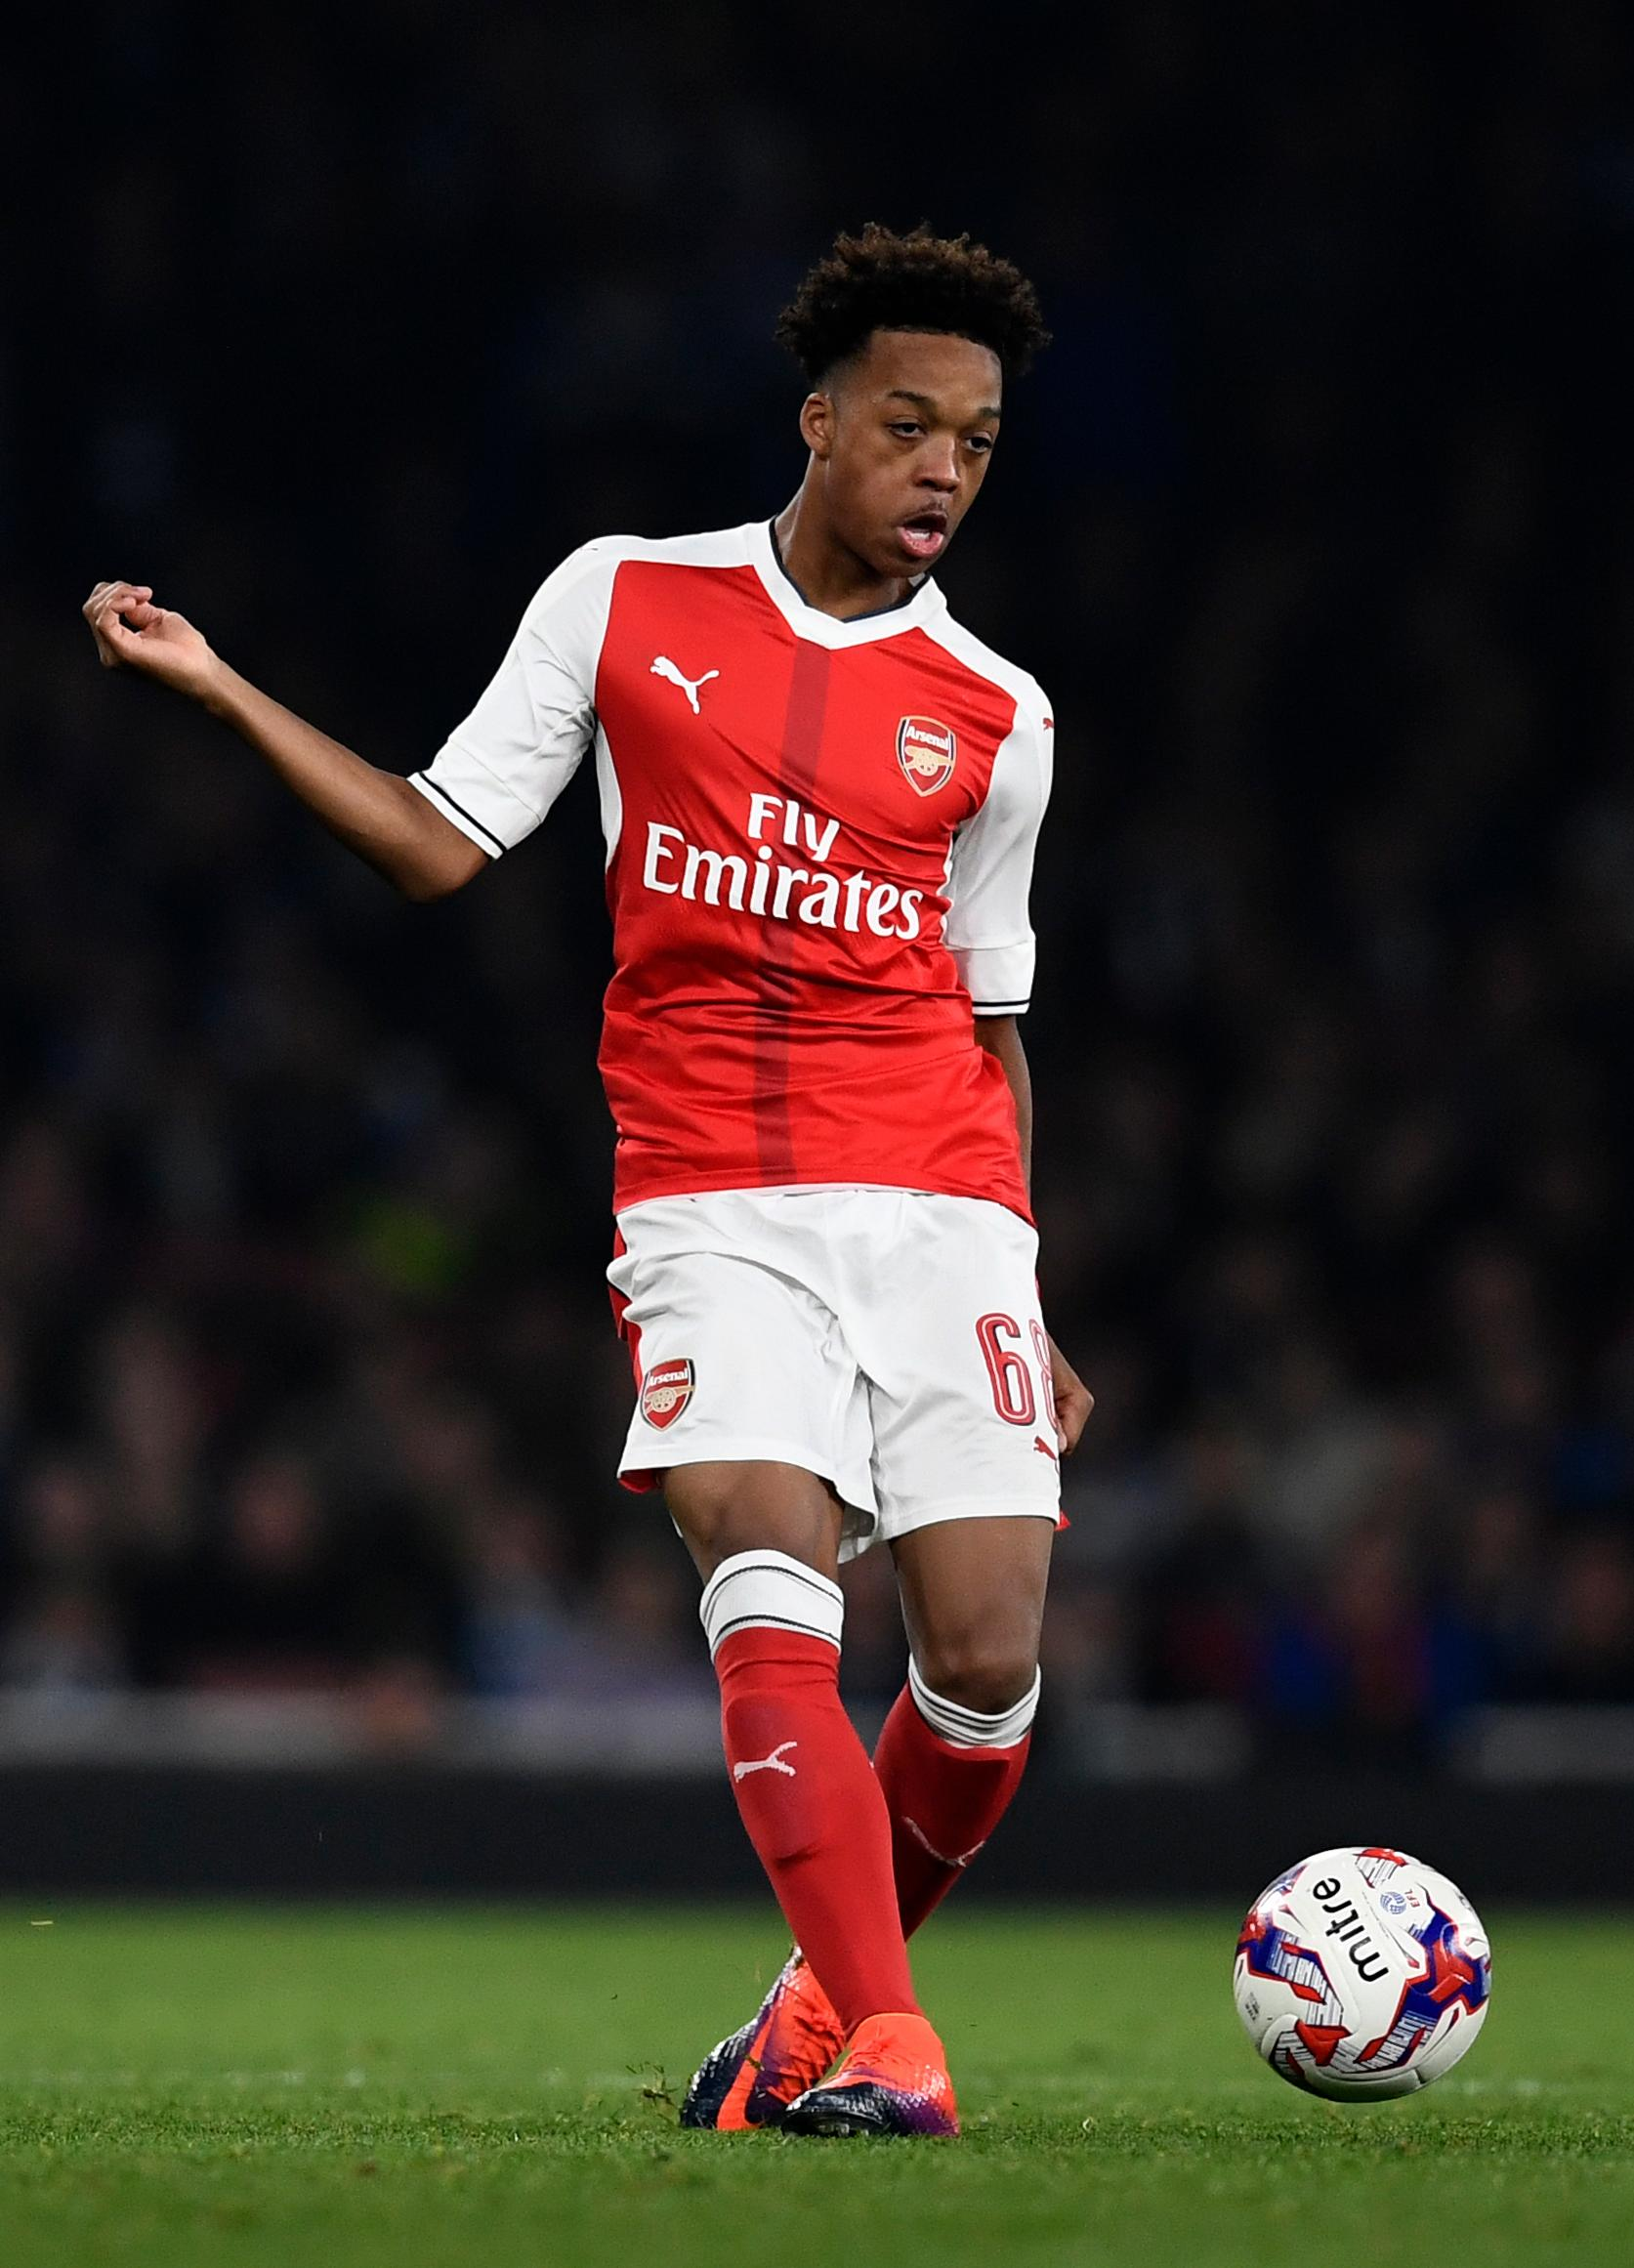 Willock Commits His Future To Arsenal